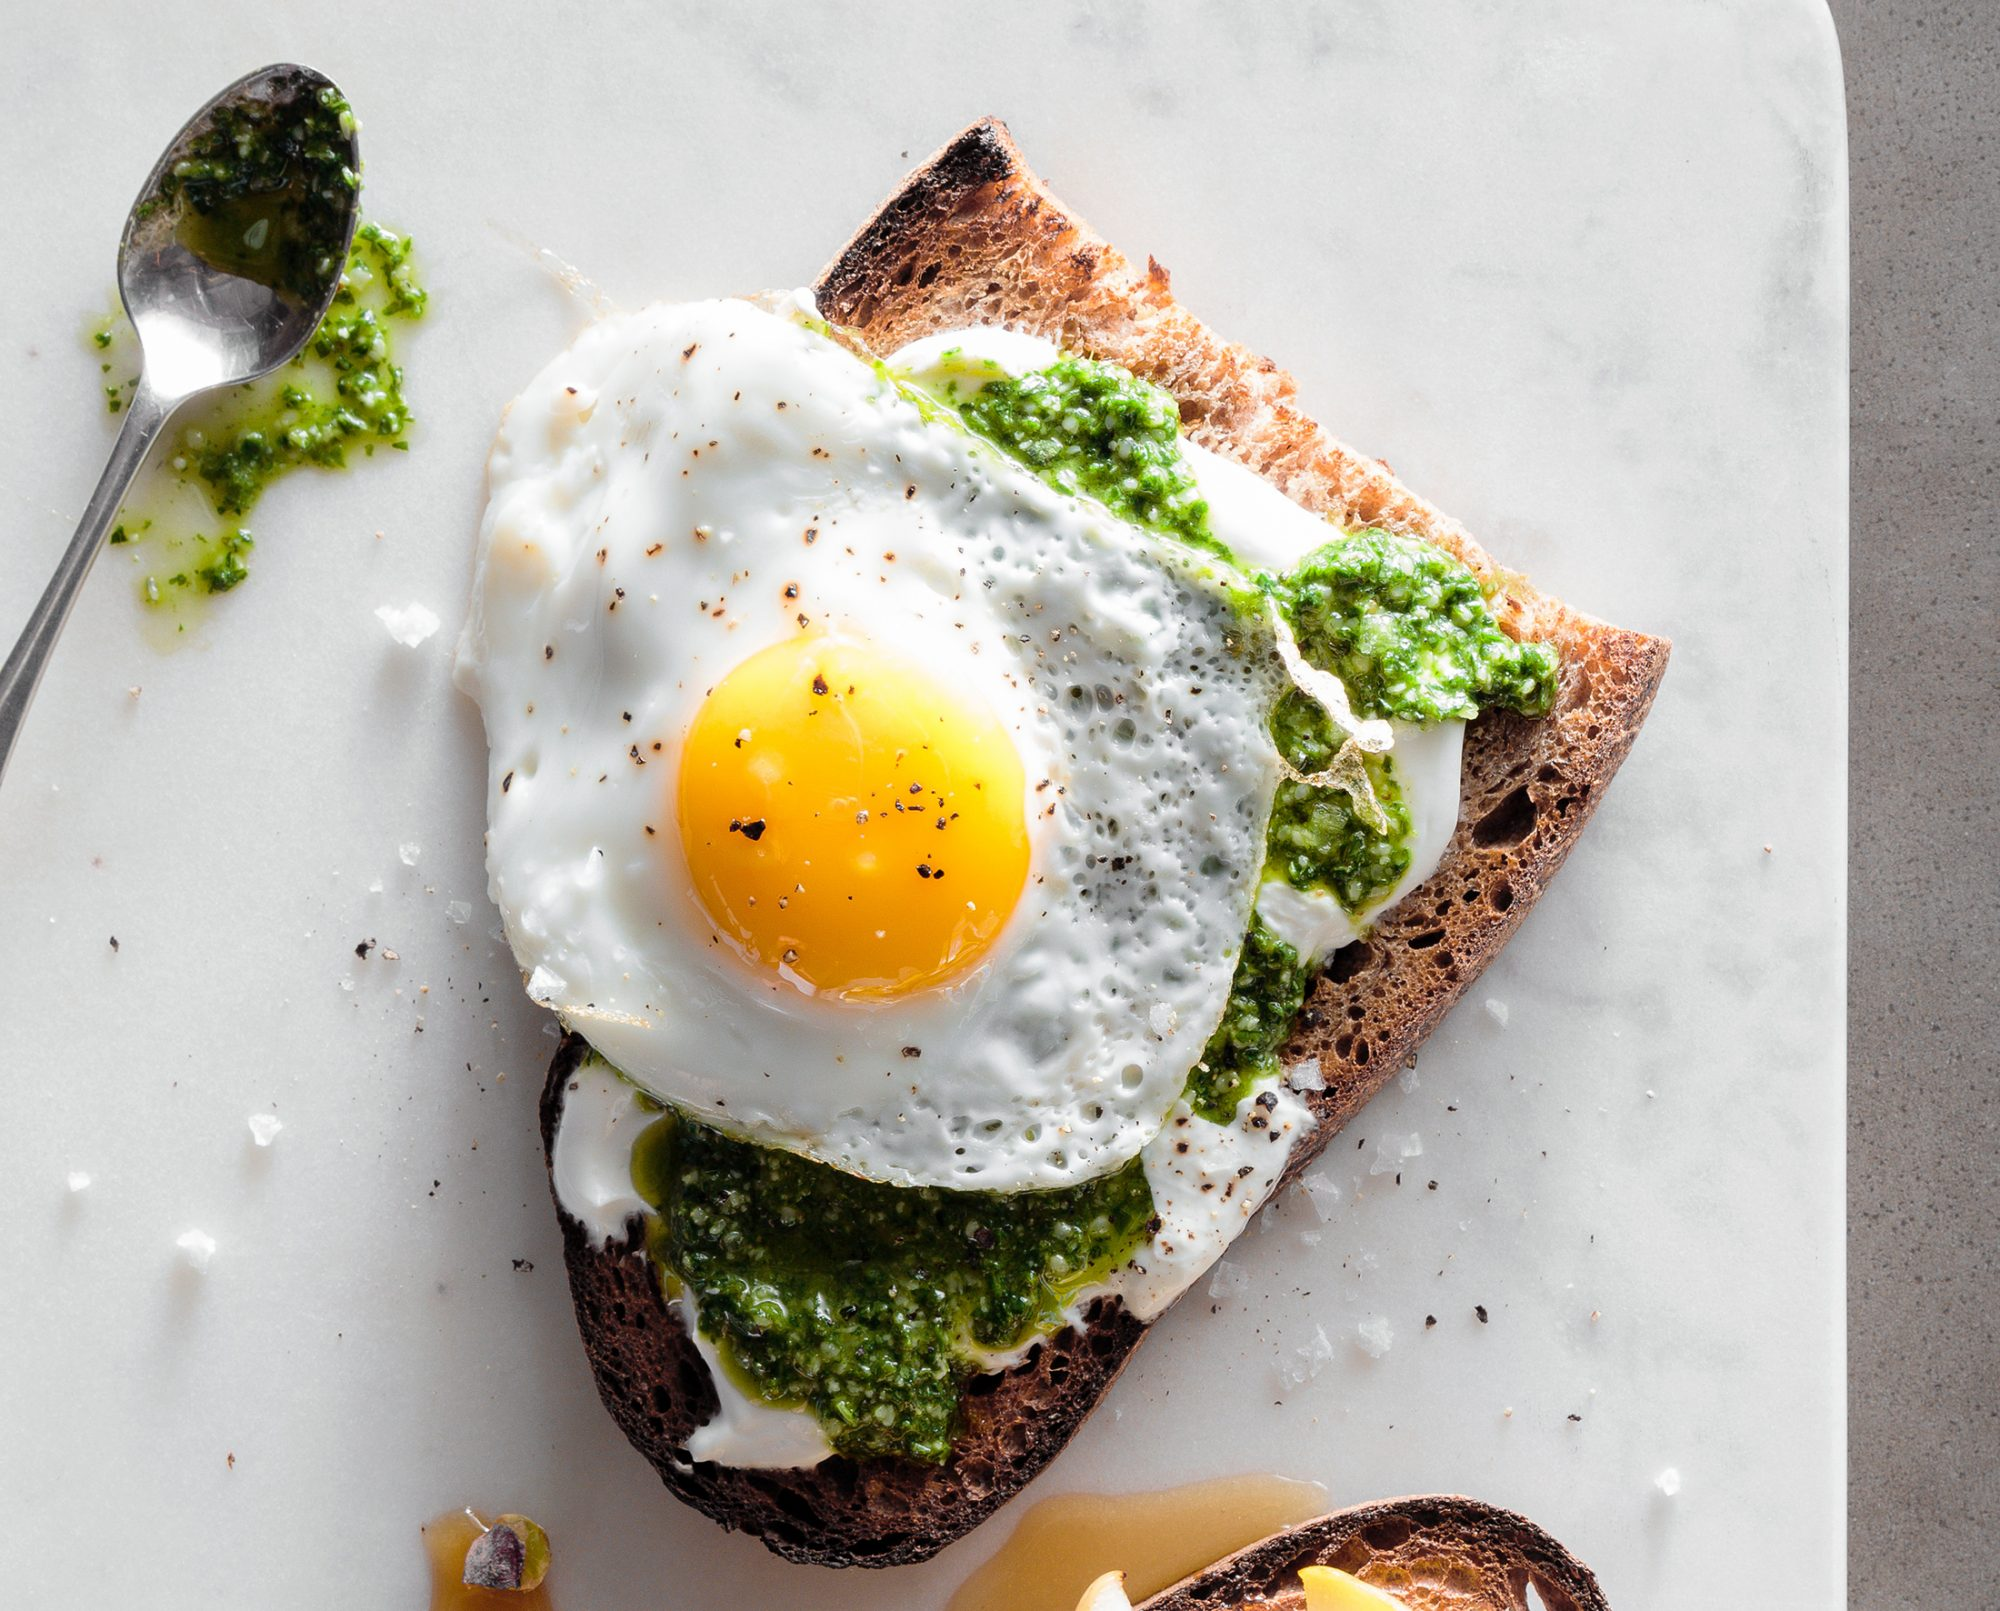 Cilantro and Kale Pesto Toast with a Fried Egg